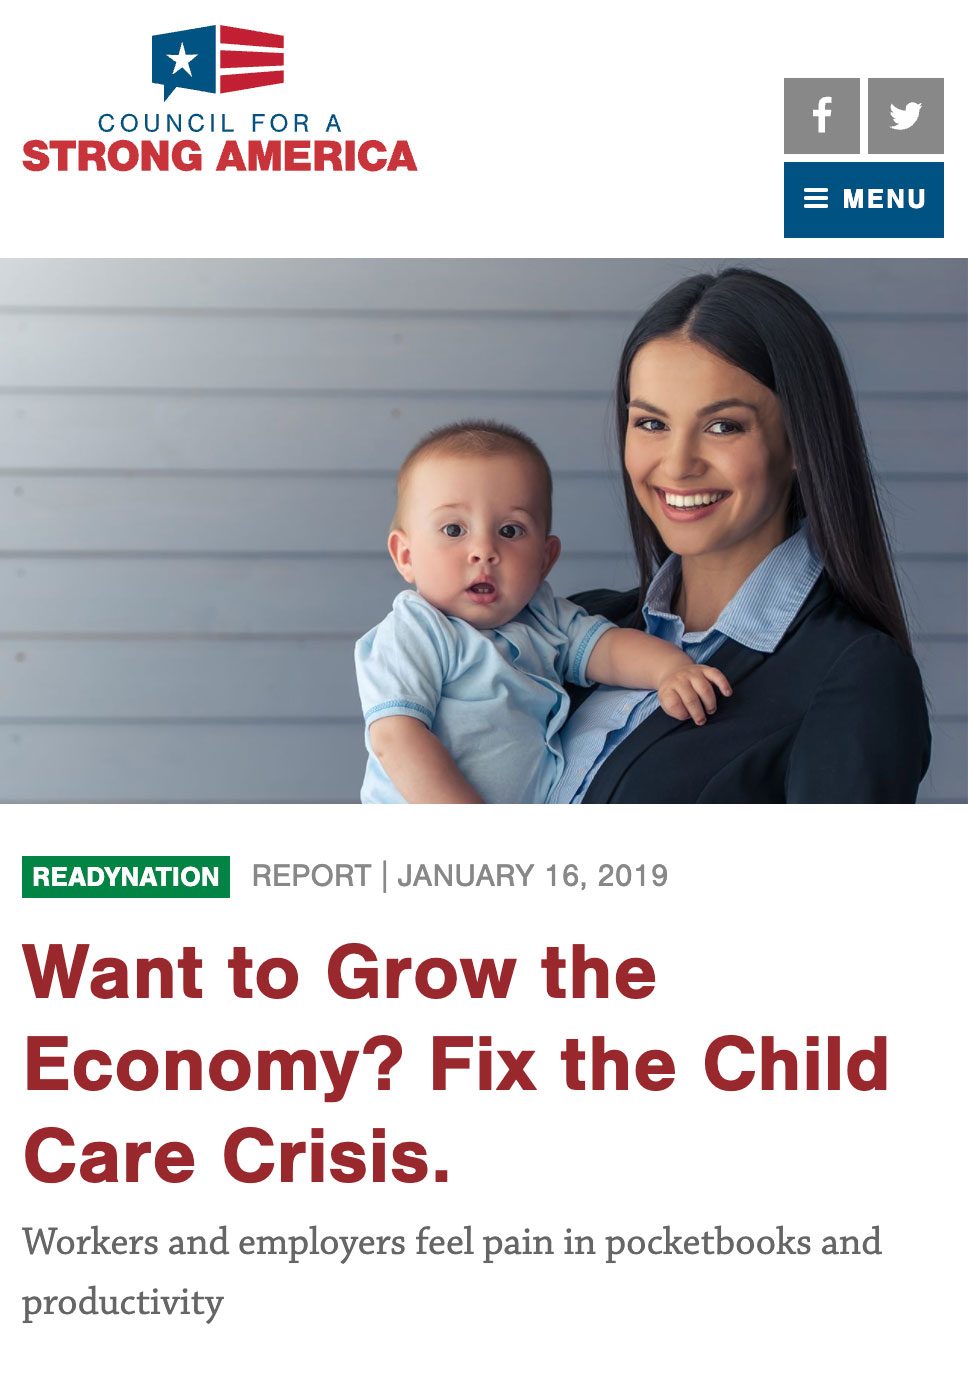 Want to Grow the Economy? Fix the Child Care Crisis.